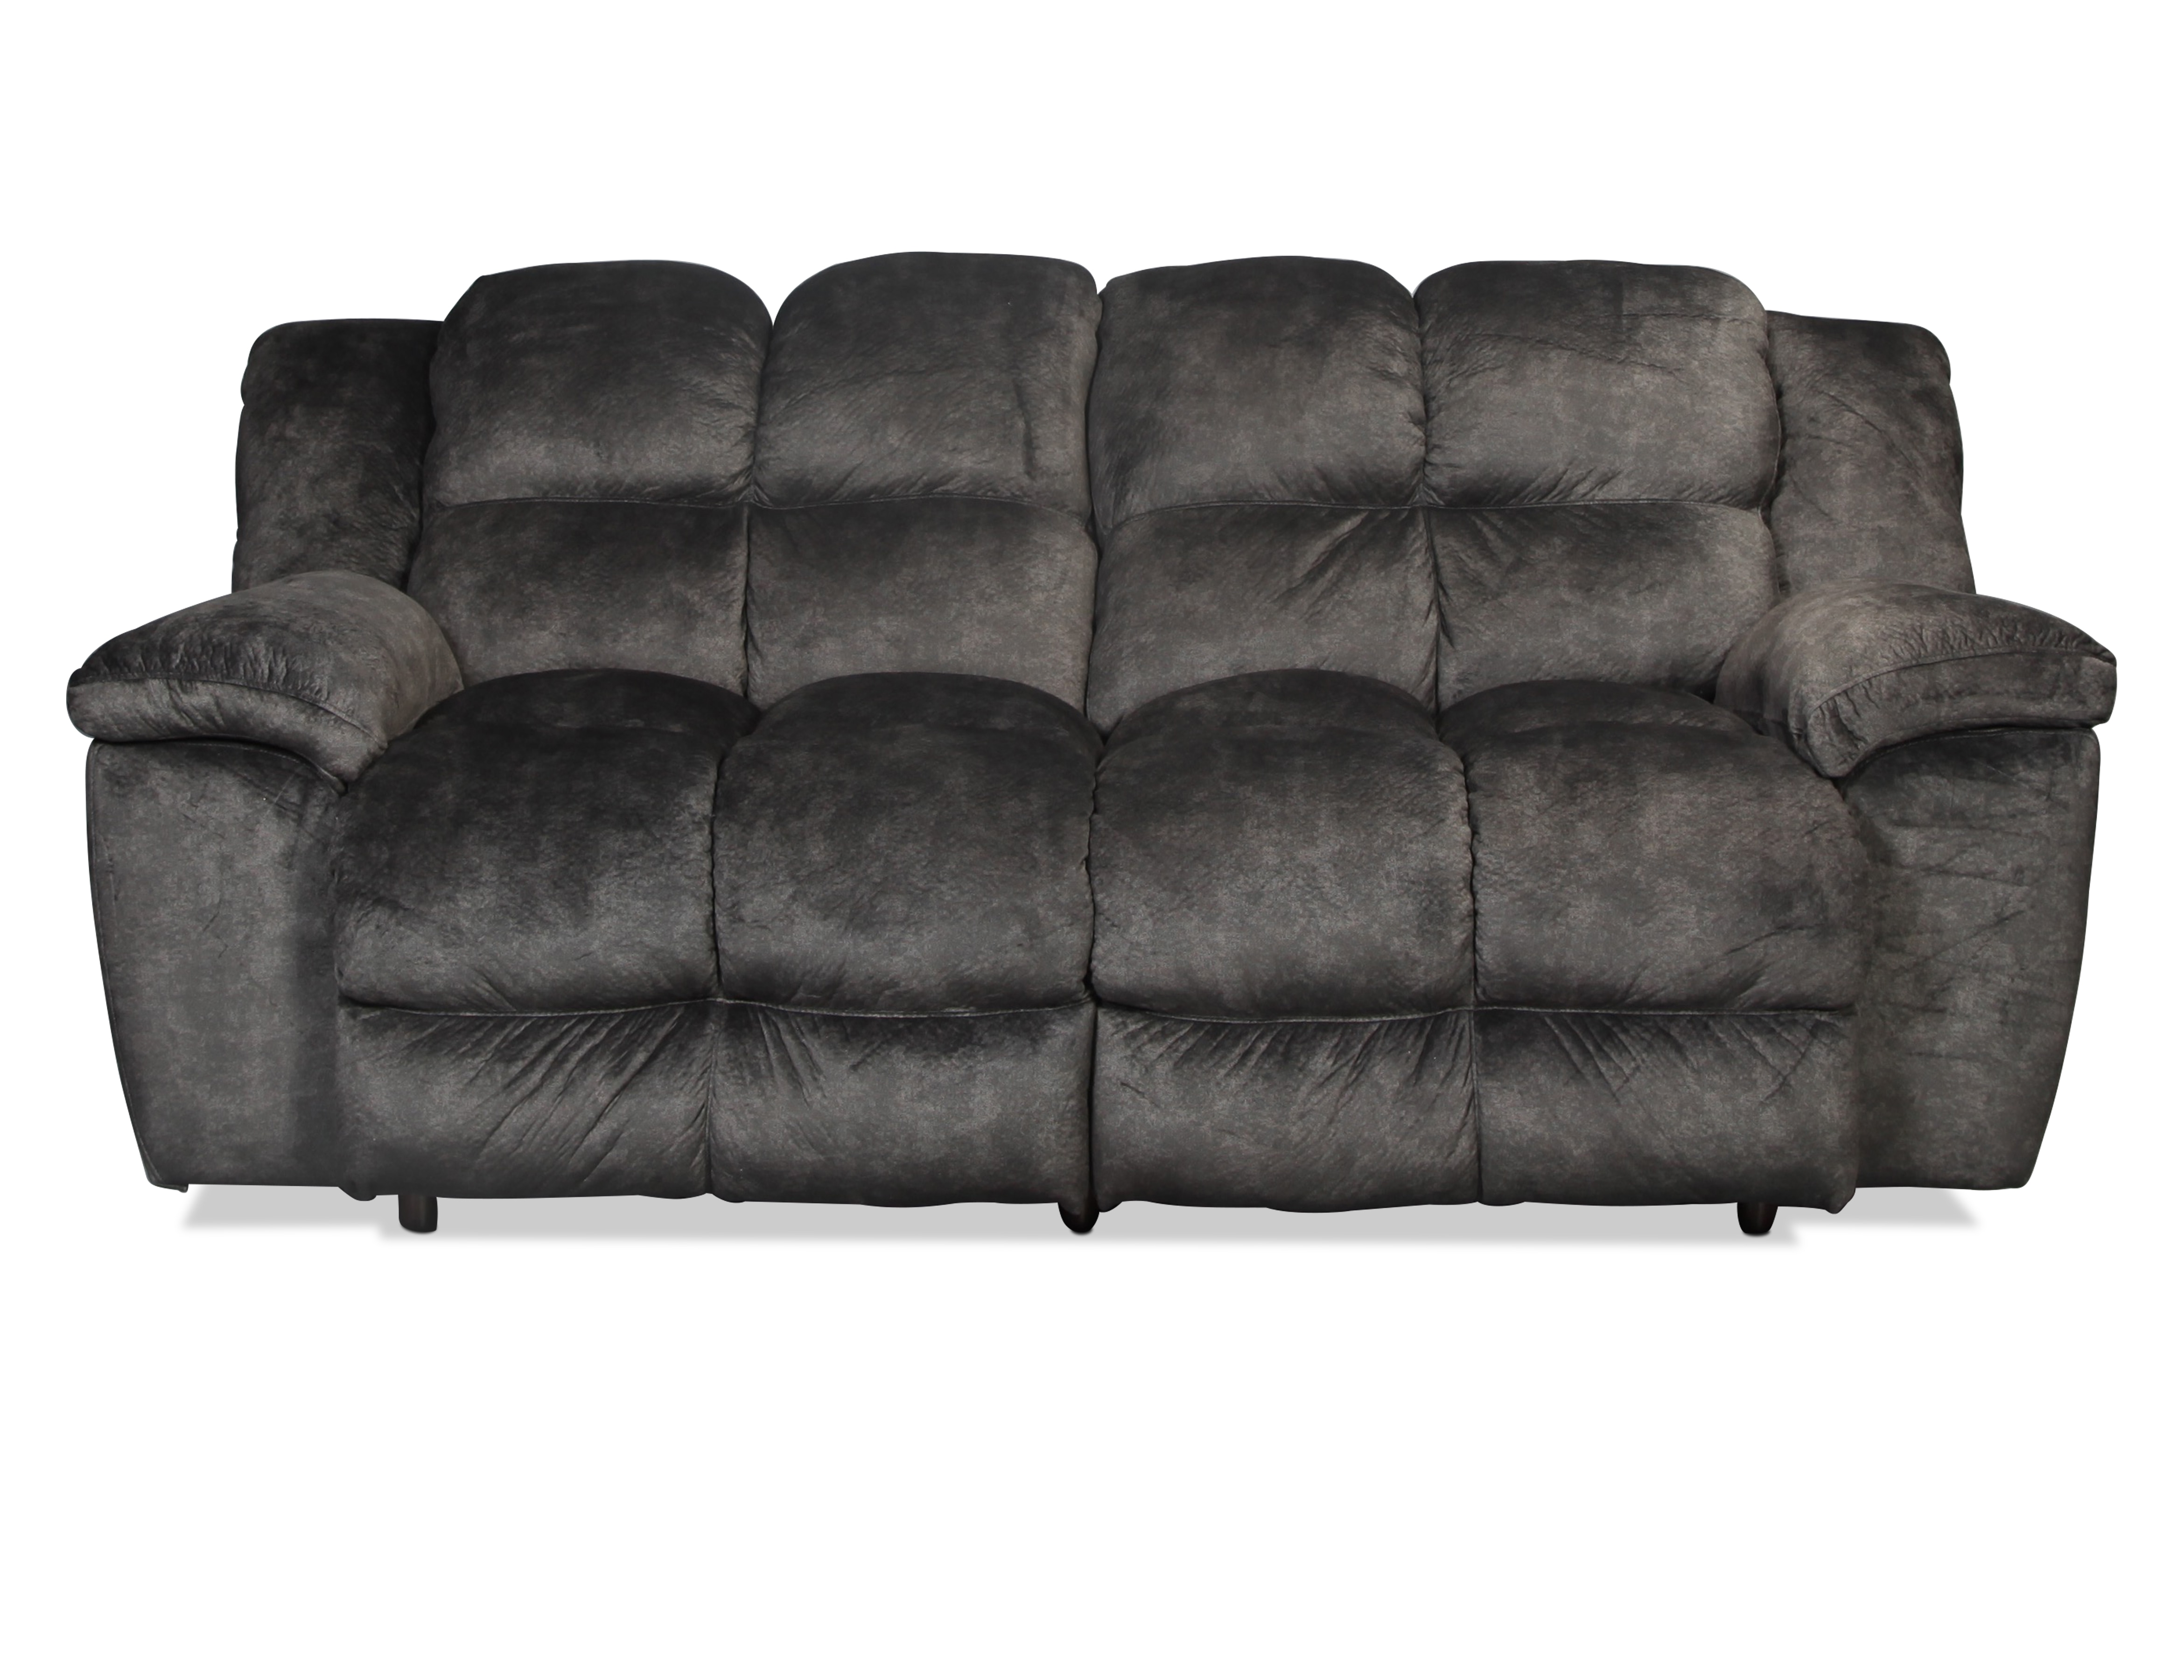 Braylon Loveseat - Charcoal